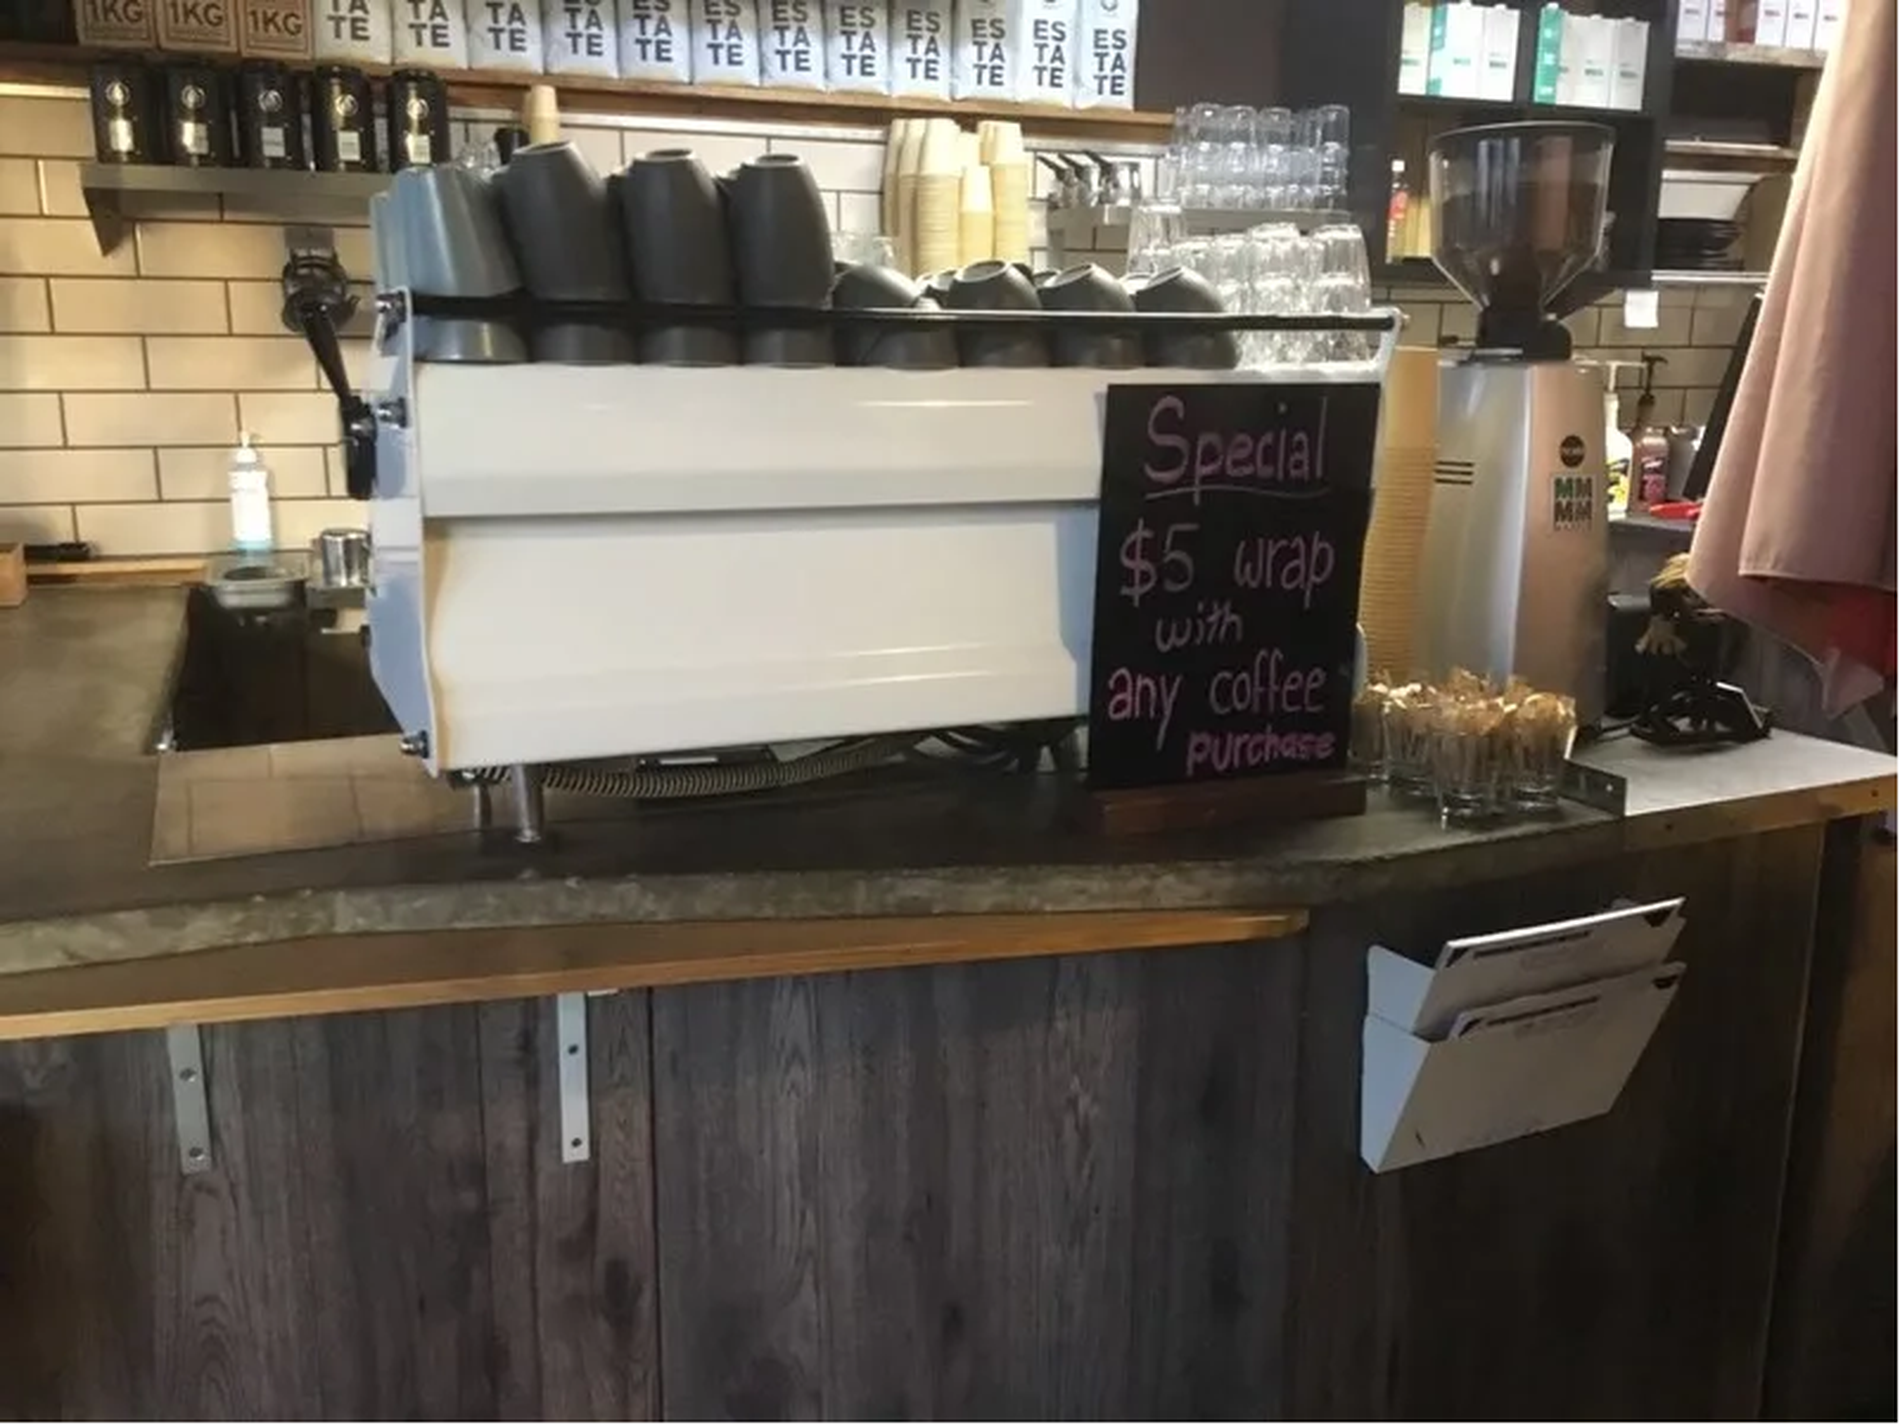 SOLD - Cafe Business For Sale Bayside